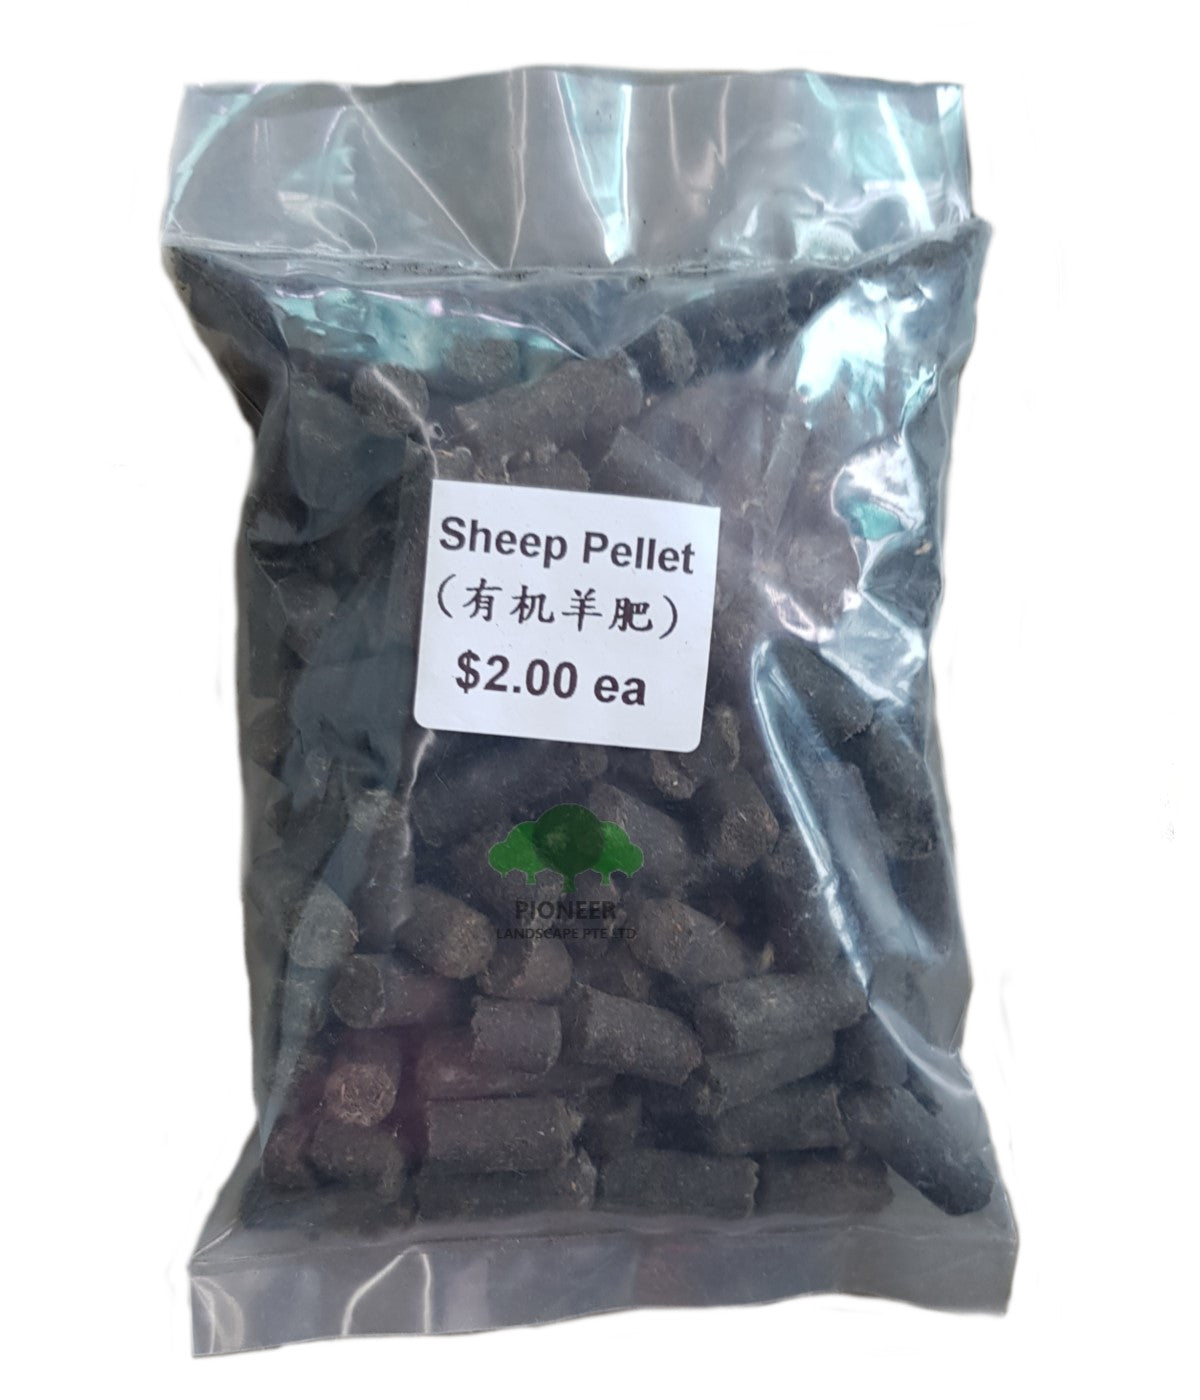 Sheep Pellets, Organic Fertilizer (Small Packet)